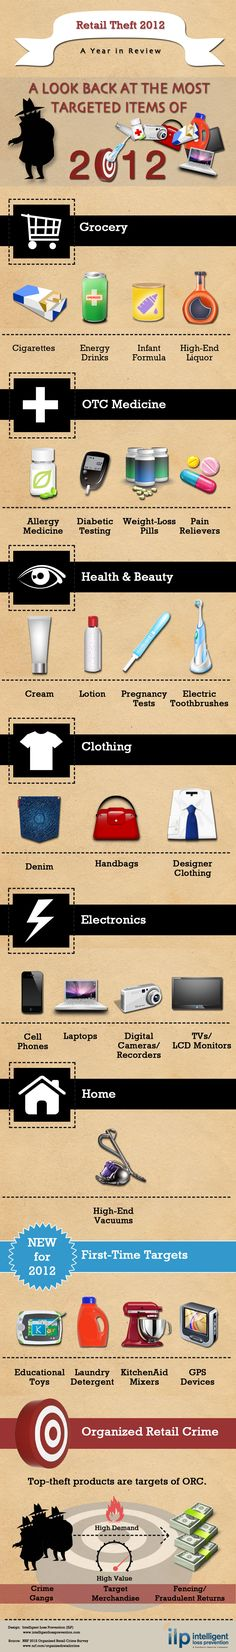 Infographic of the most targeted items of retail theft in 2012 by Intelligent Loss Prevention.